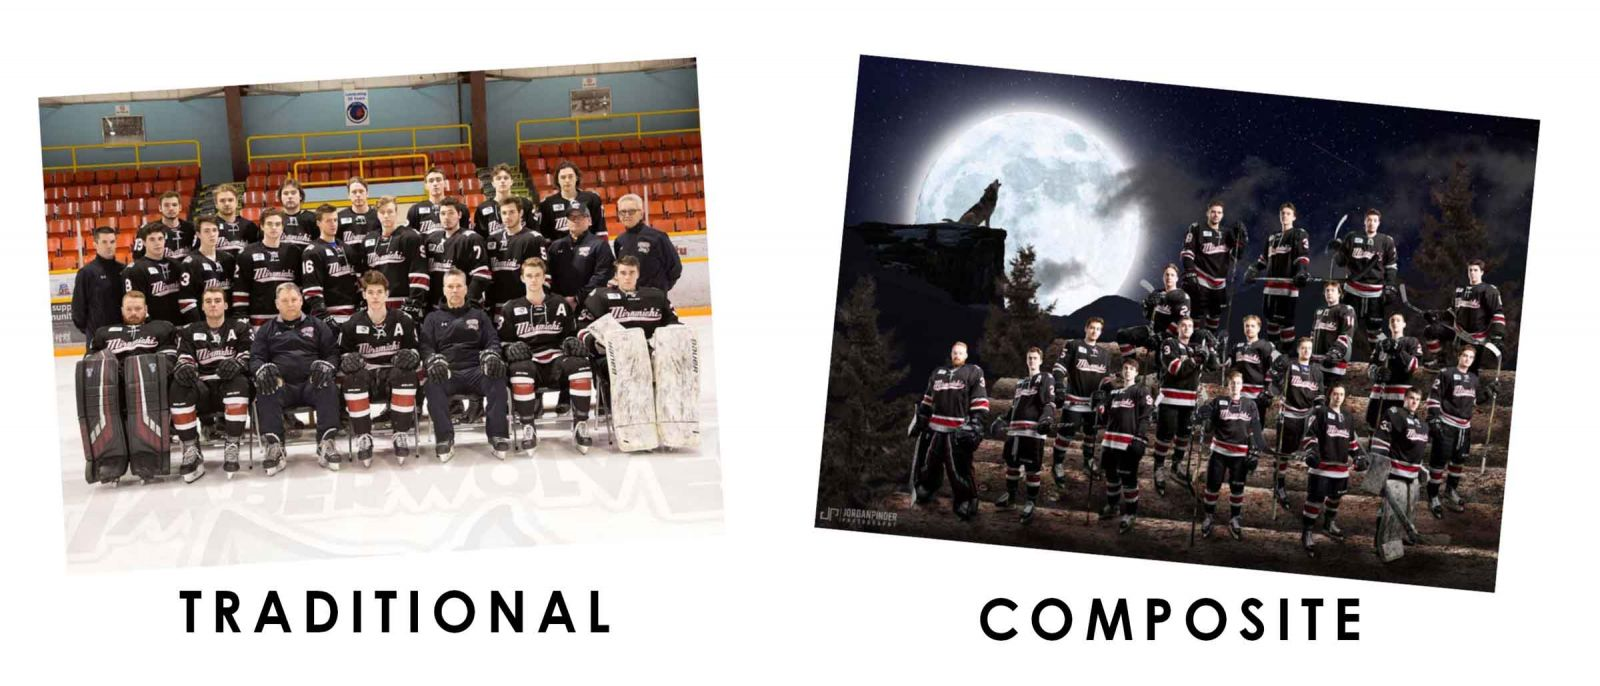 comparison of traditional and composite hockey team photo